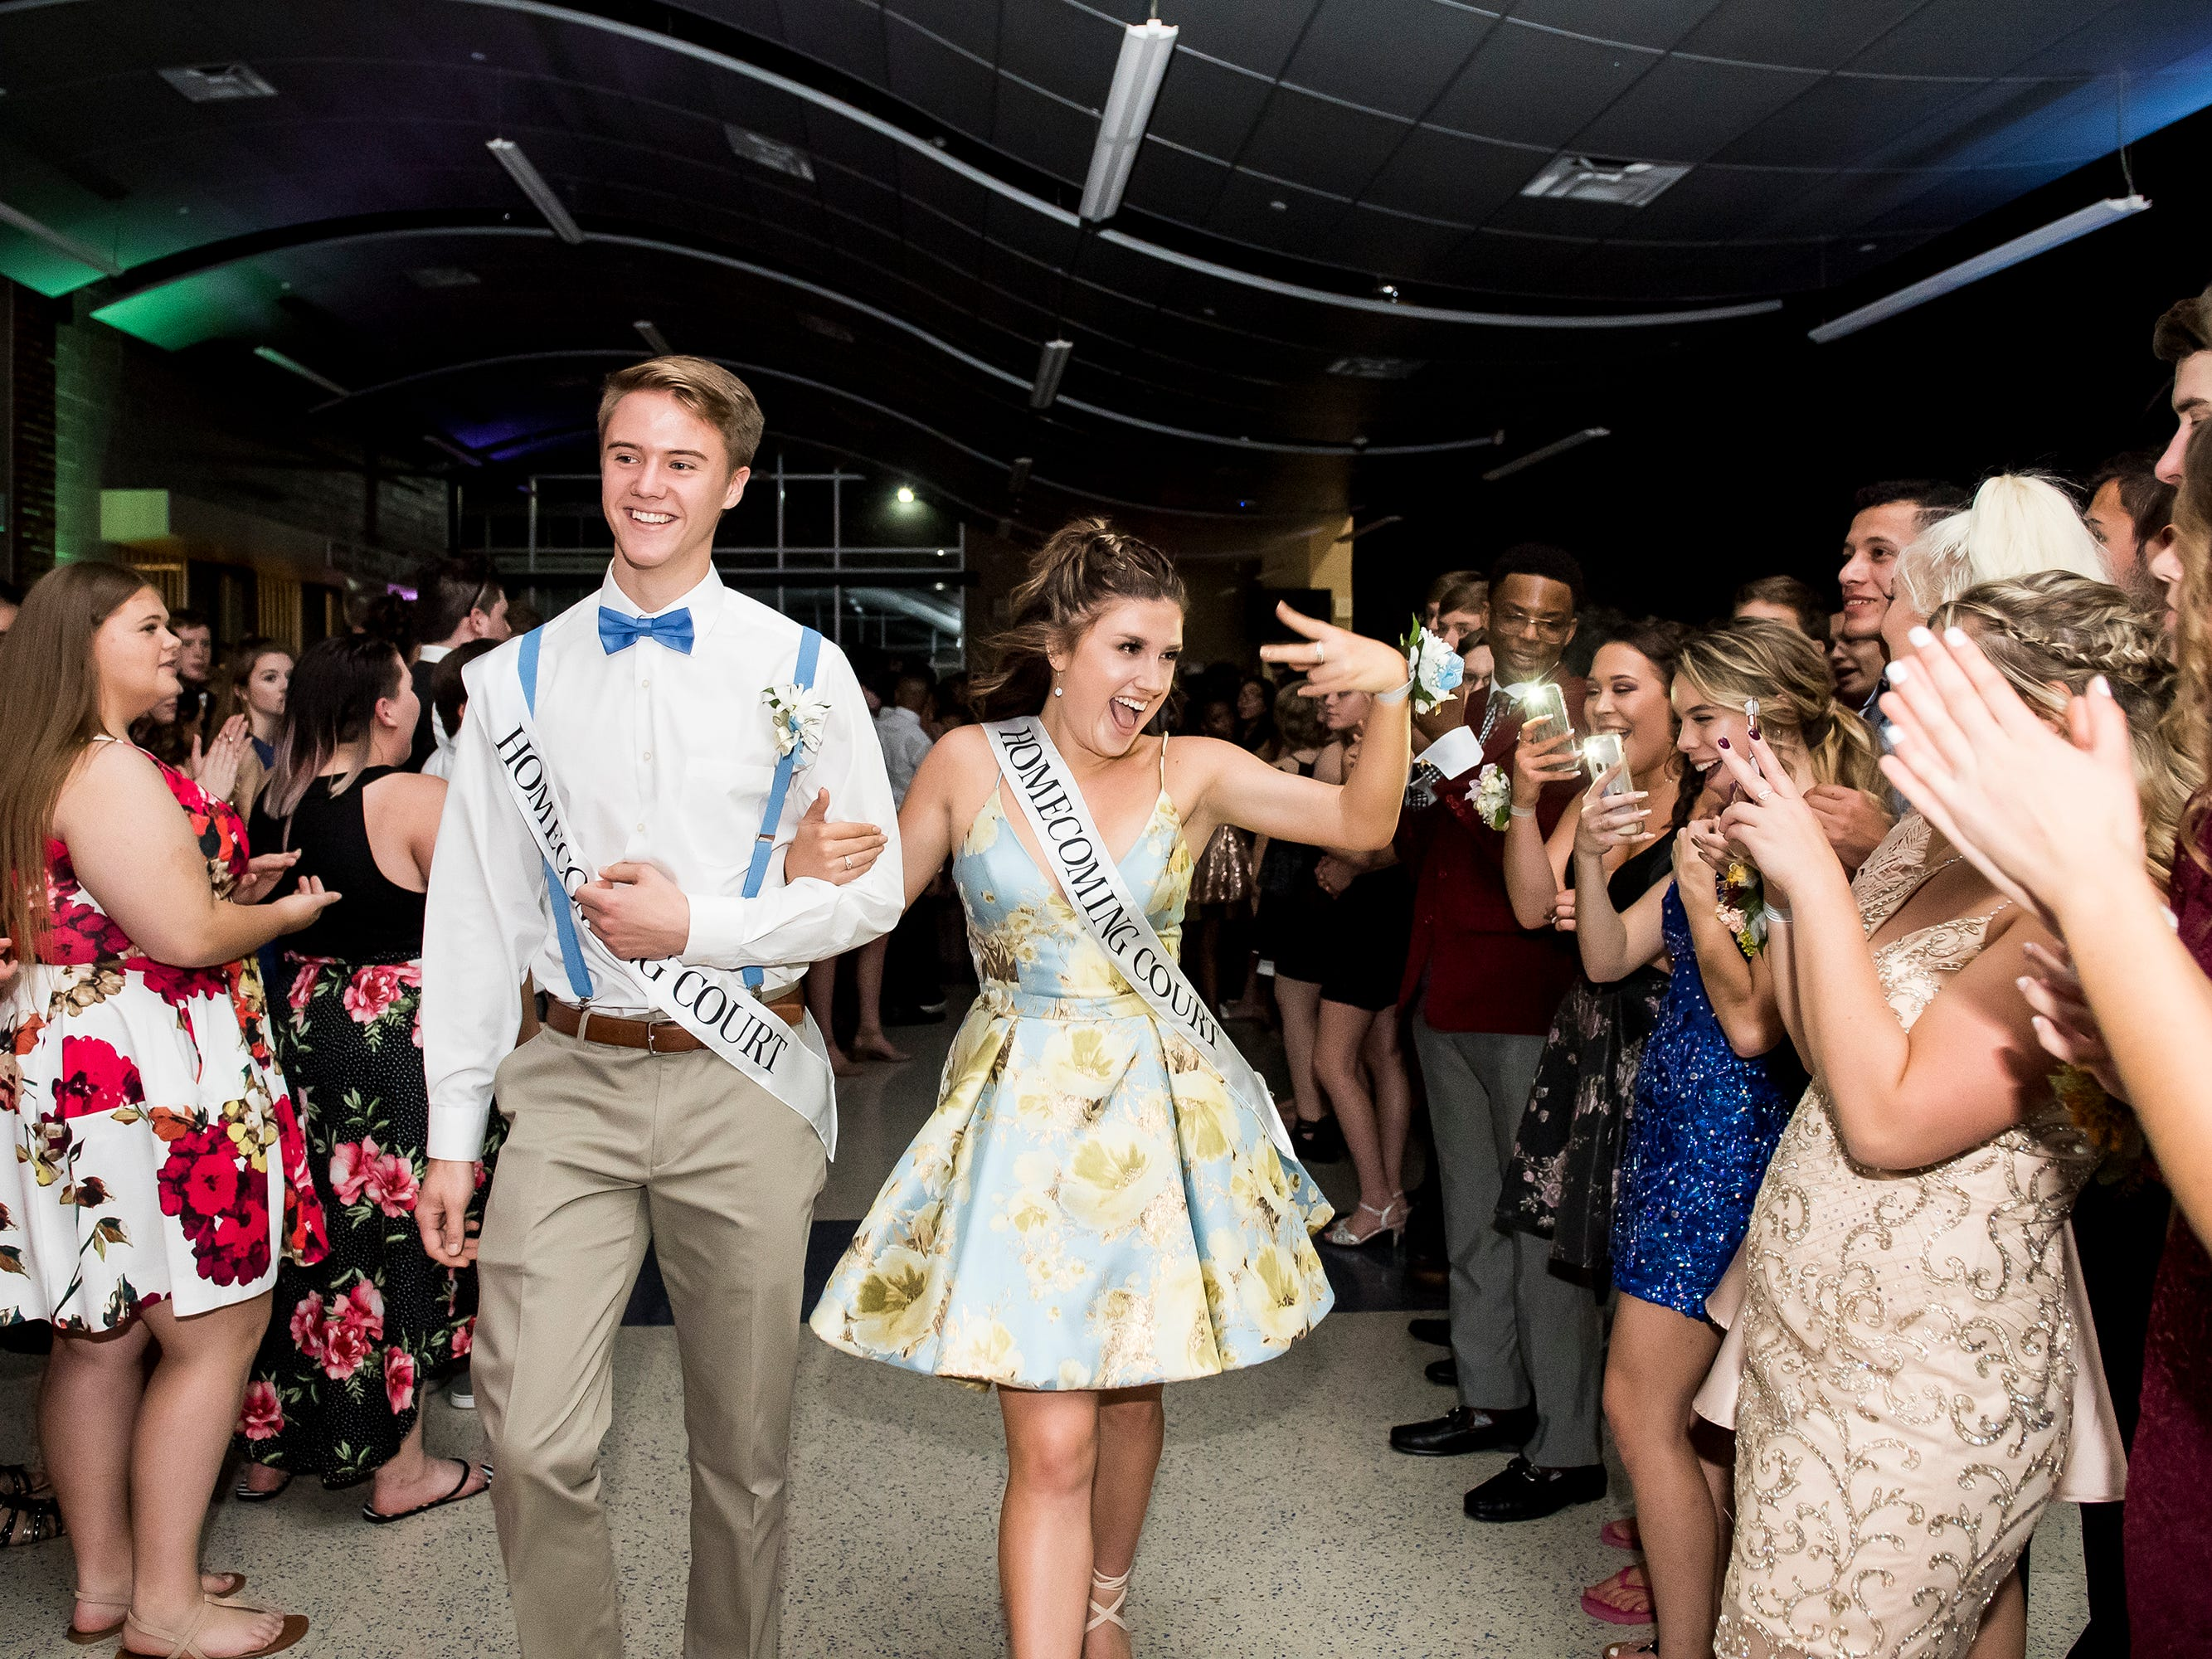 Members of the homecoming court are introduced at Spring Grove Area High School's dance on Saturday, October 13, 2018.